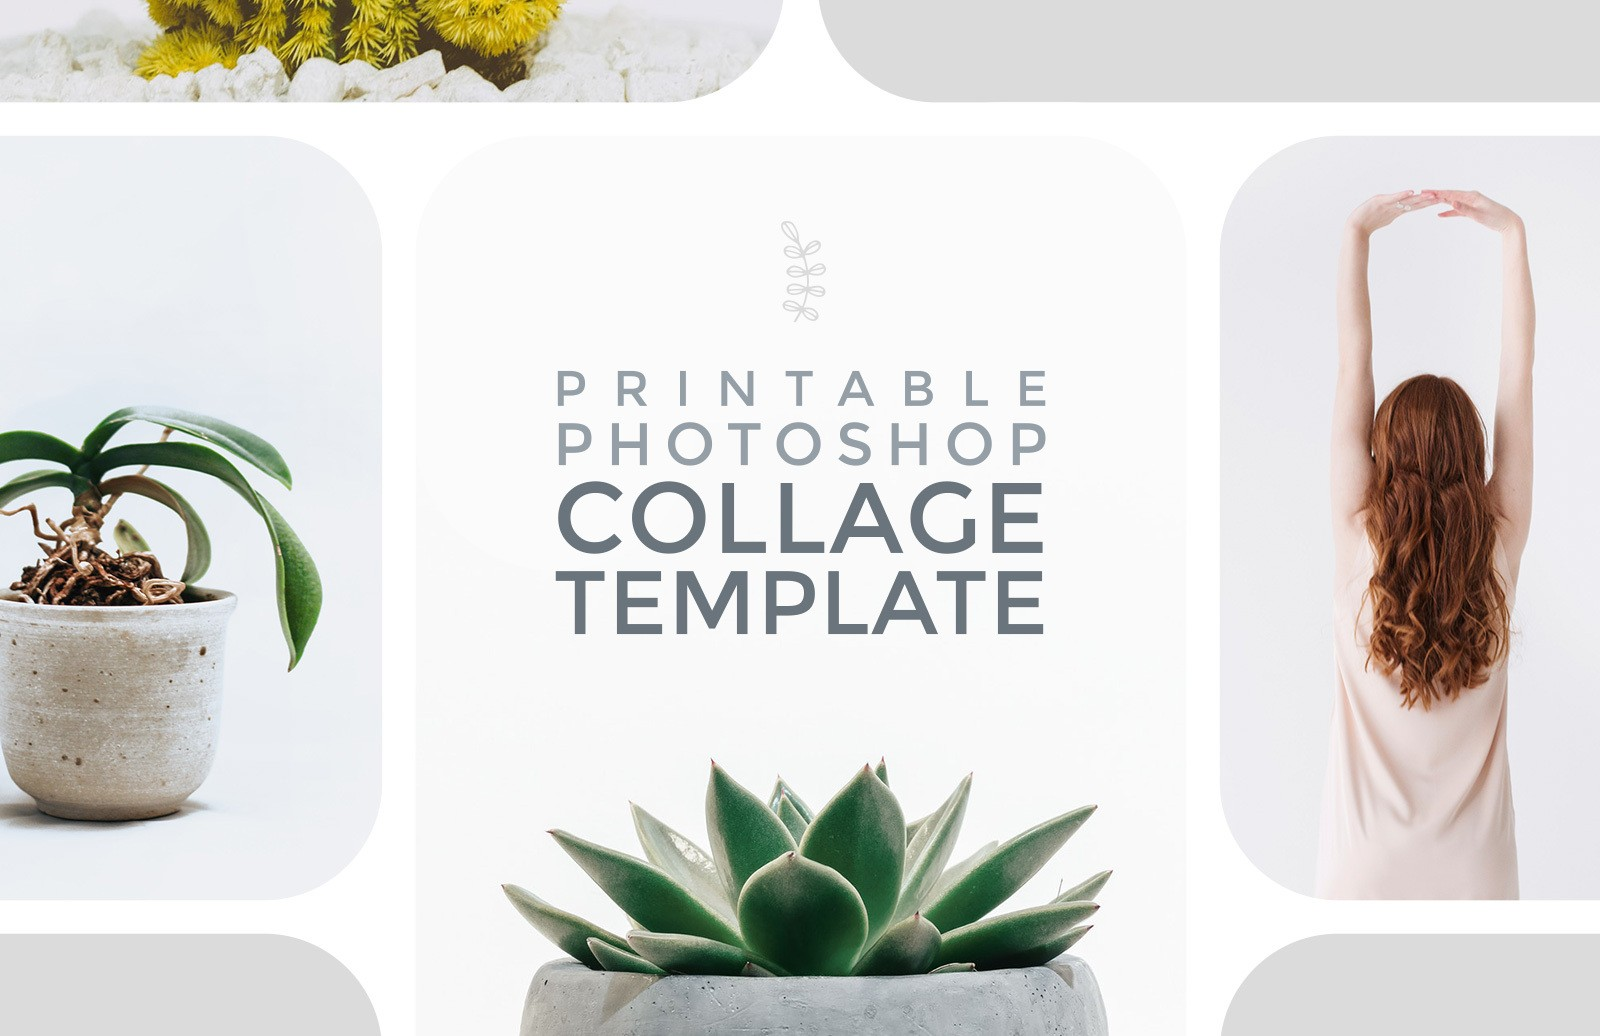 Printable Photoshop Collage Template